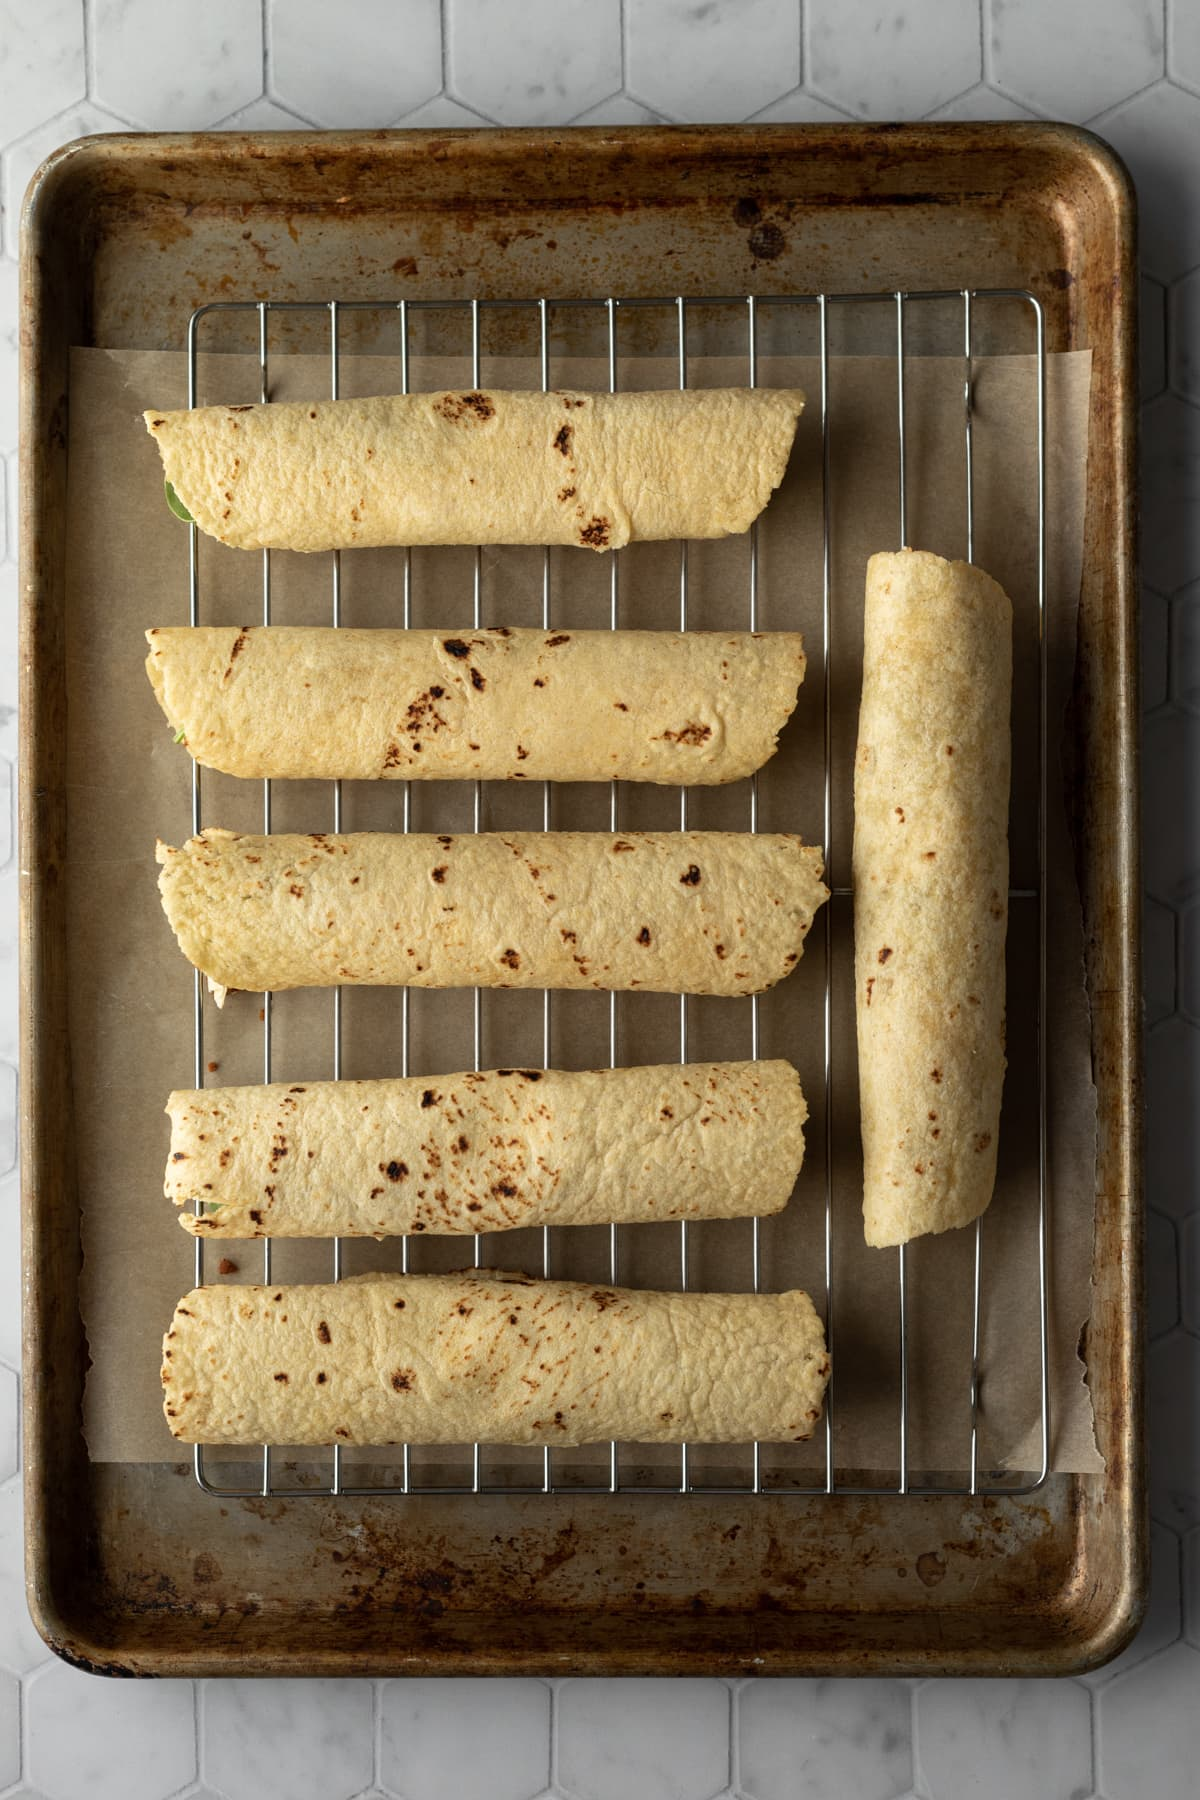 rolled up and ready to be baked